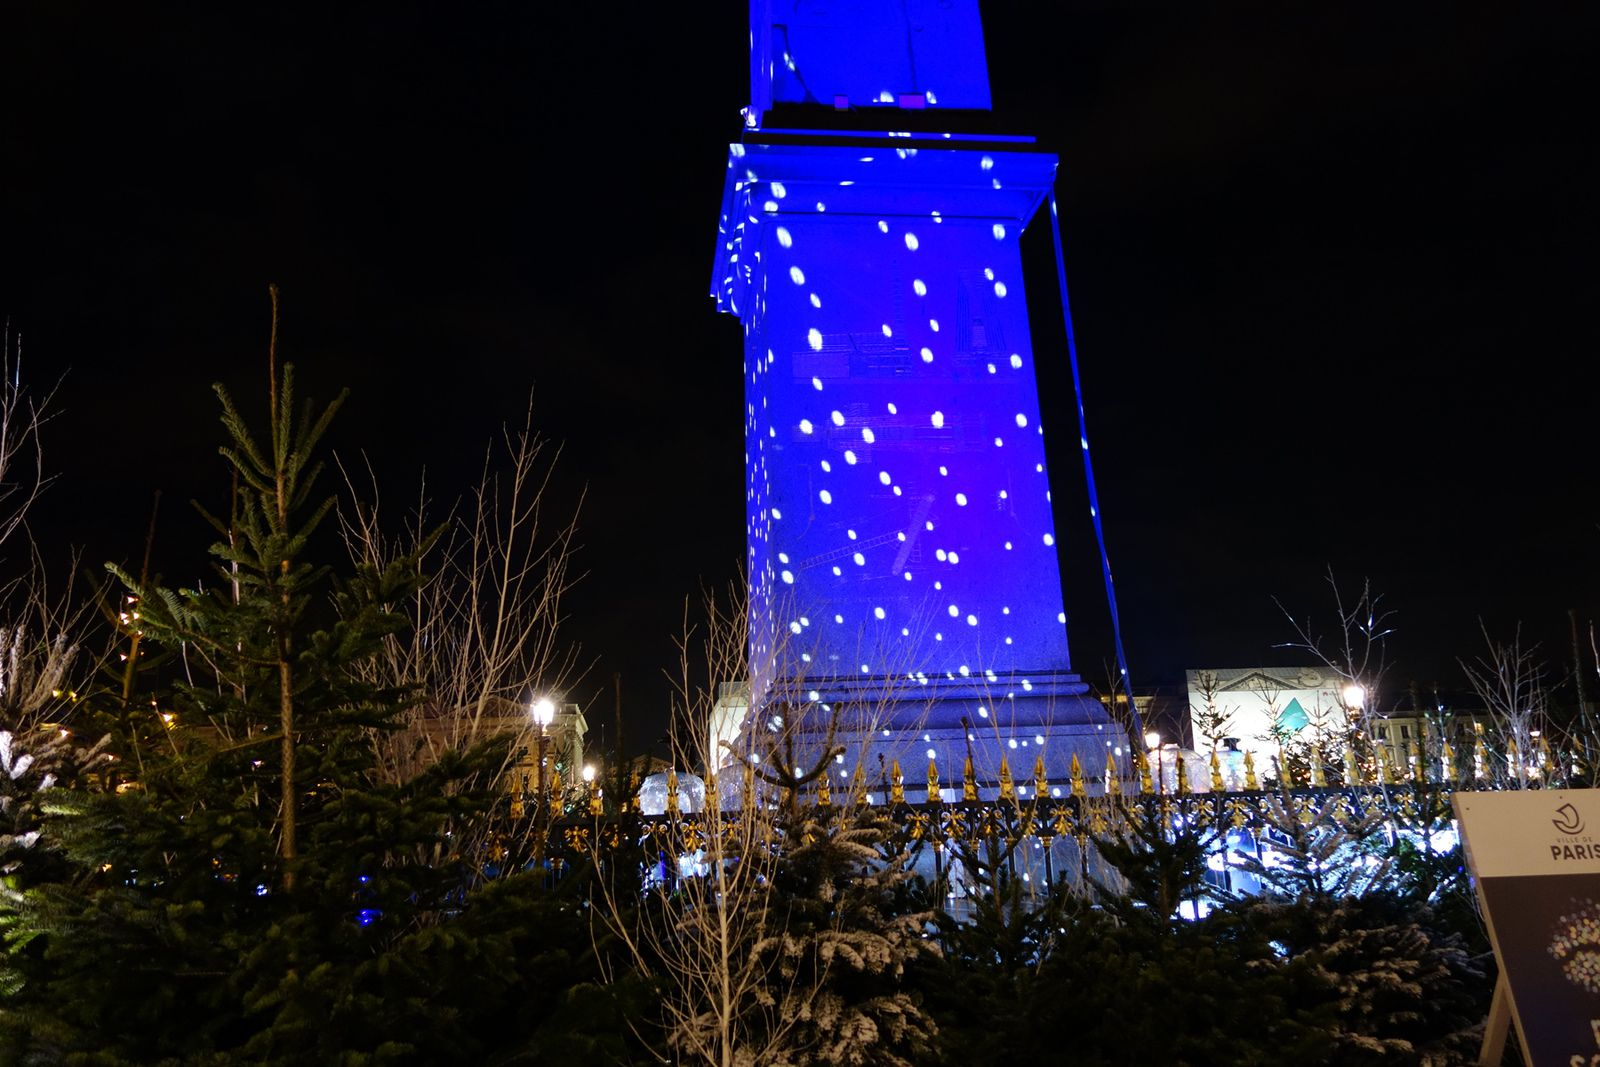 ILLUMINATIONS DIOR CHANEL OBELISQUE à PARIS (07/12/2020)